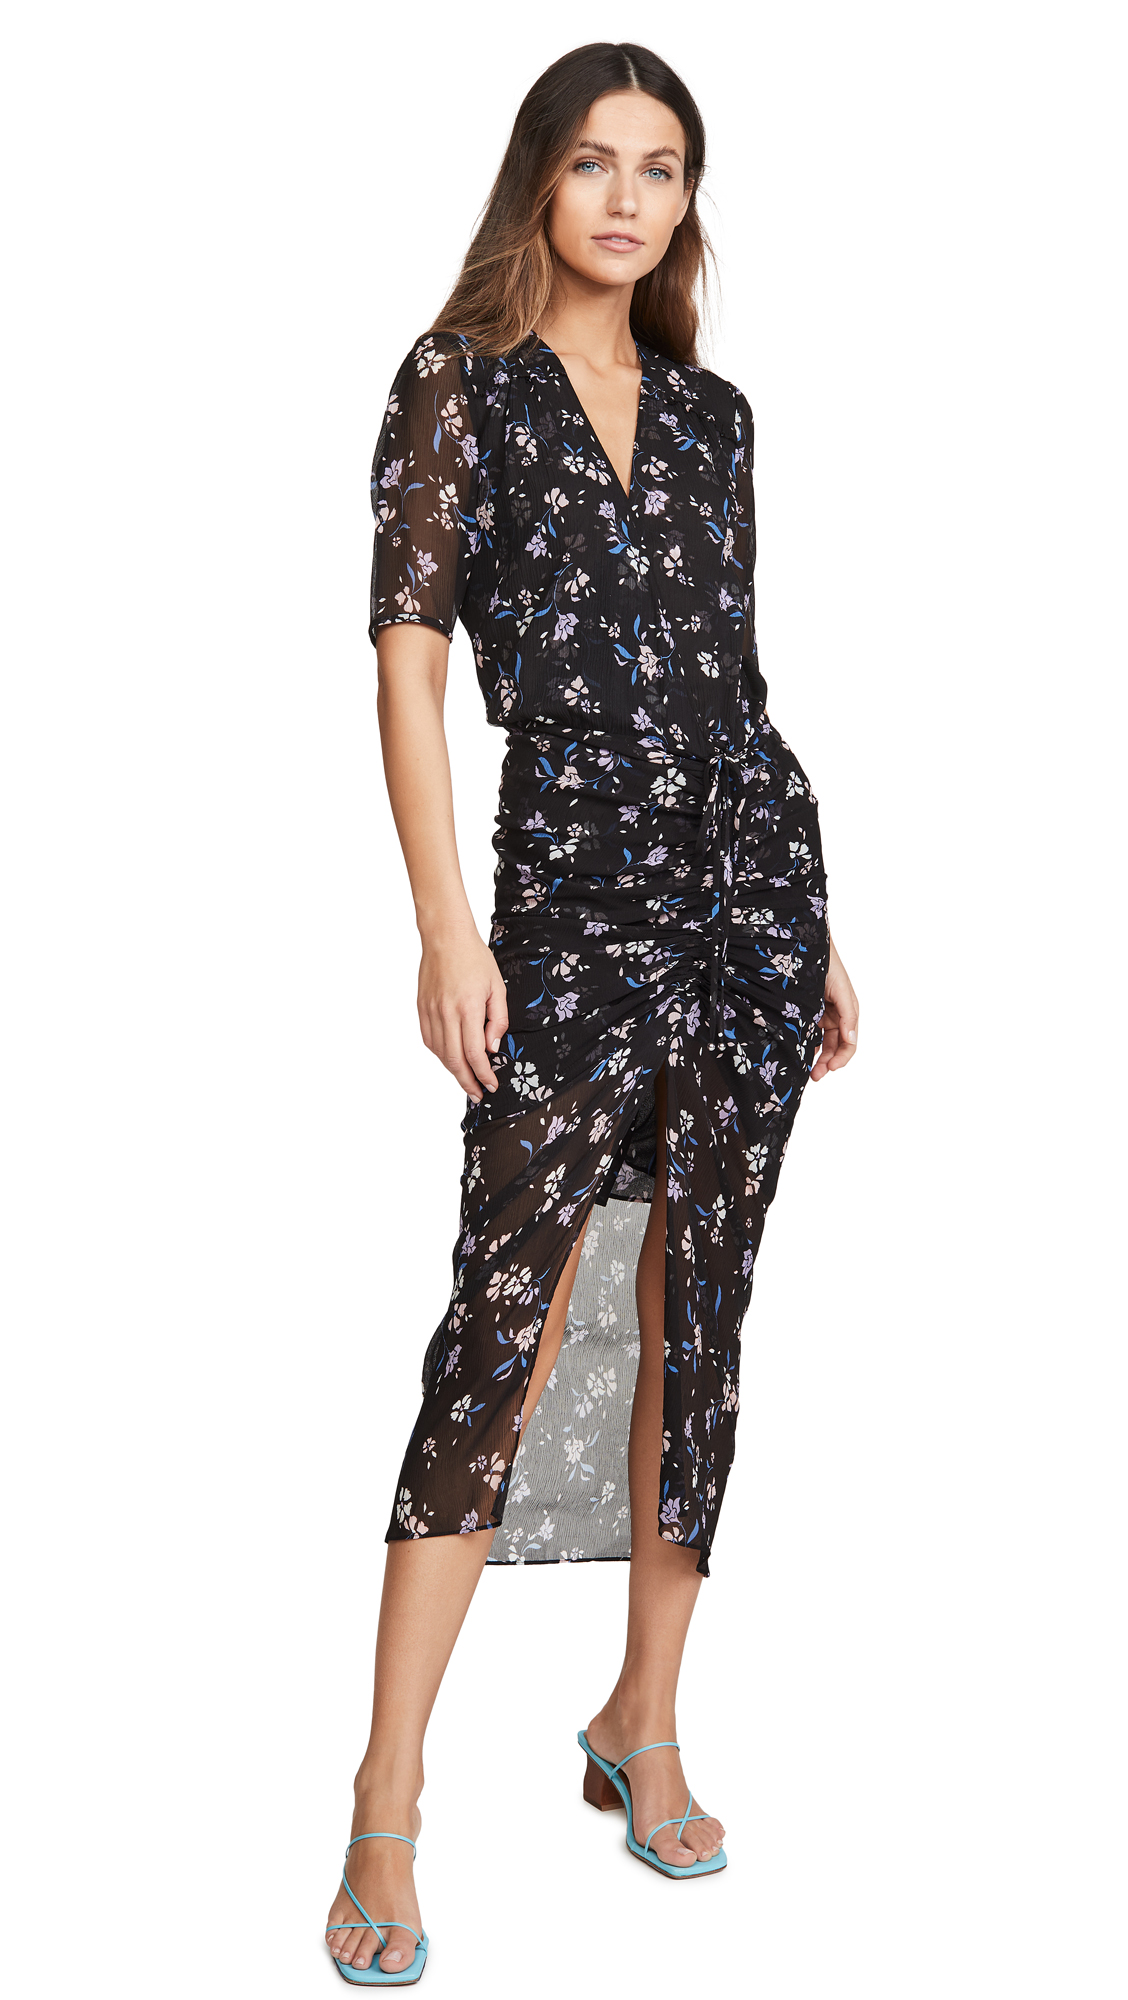 Veronica Beard Mariposa Dress - 60% Off Sale